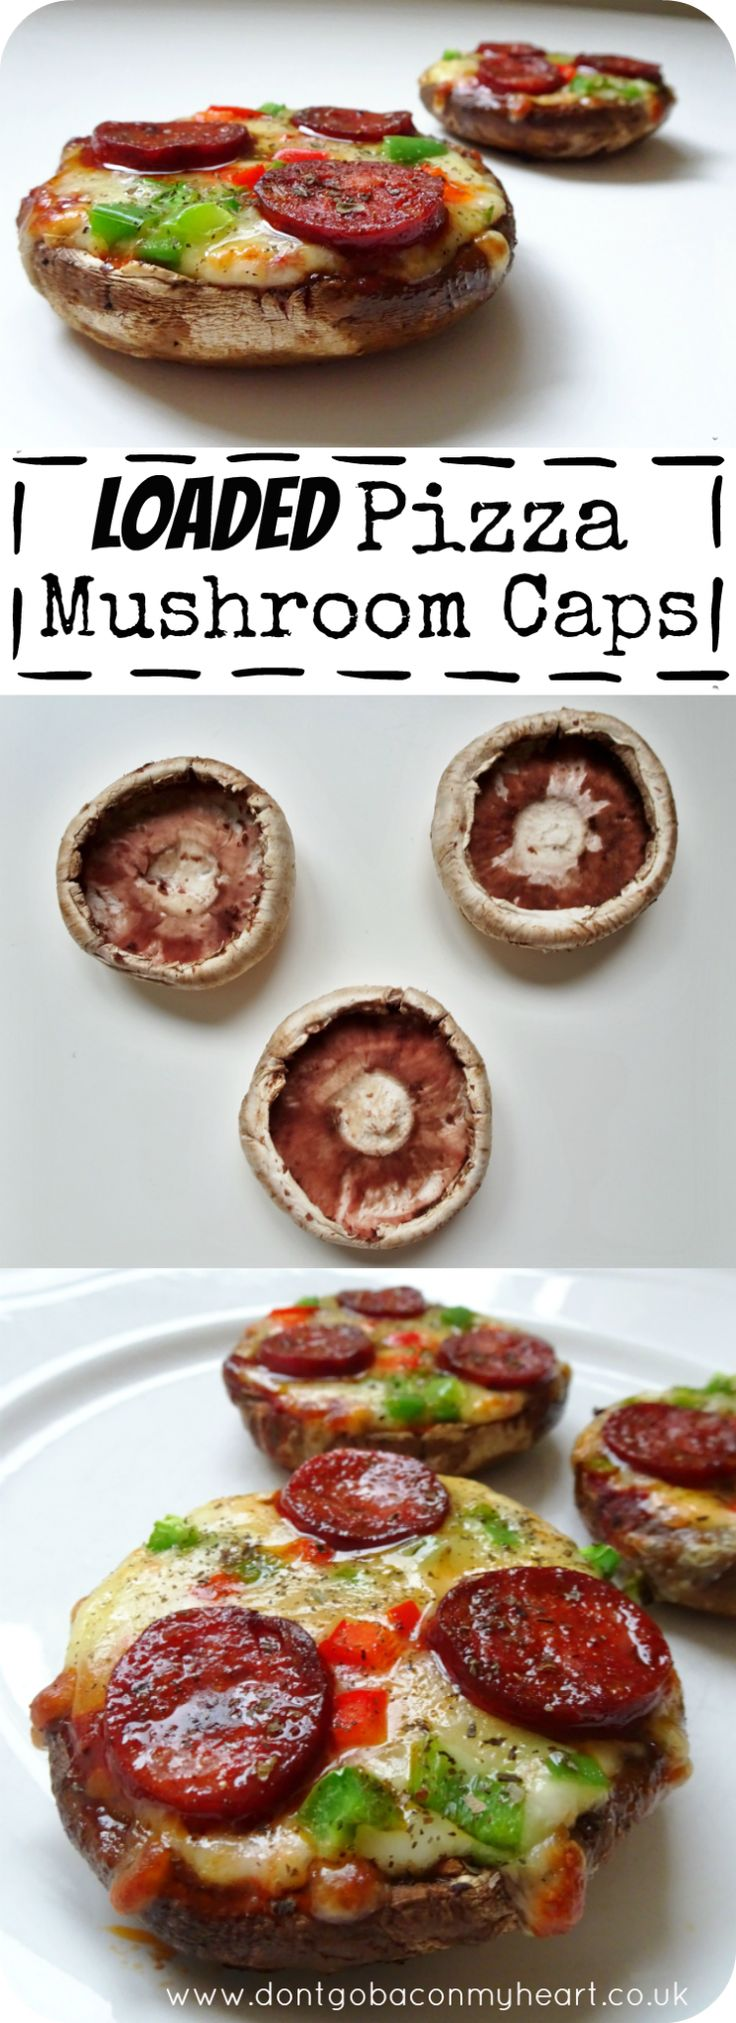 These Loaded Pizza Mushroom Caps are great for the low-carb community among us. Super easy, quick and great fun - Let's make pizzas great again!